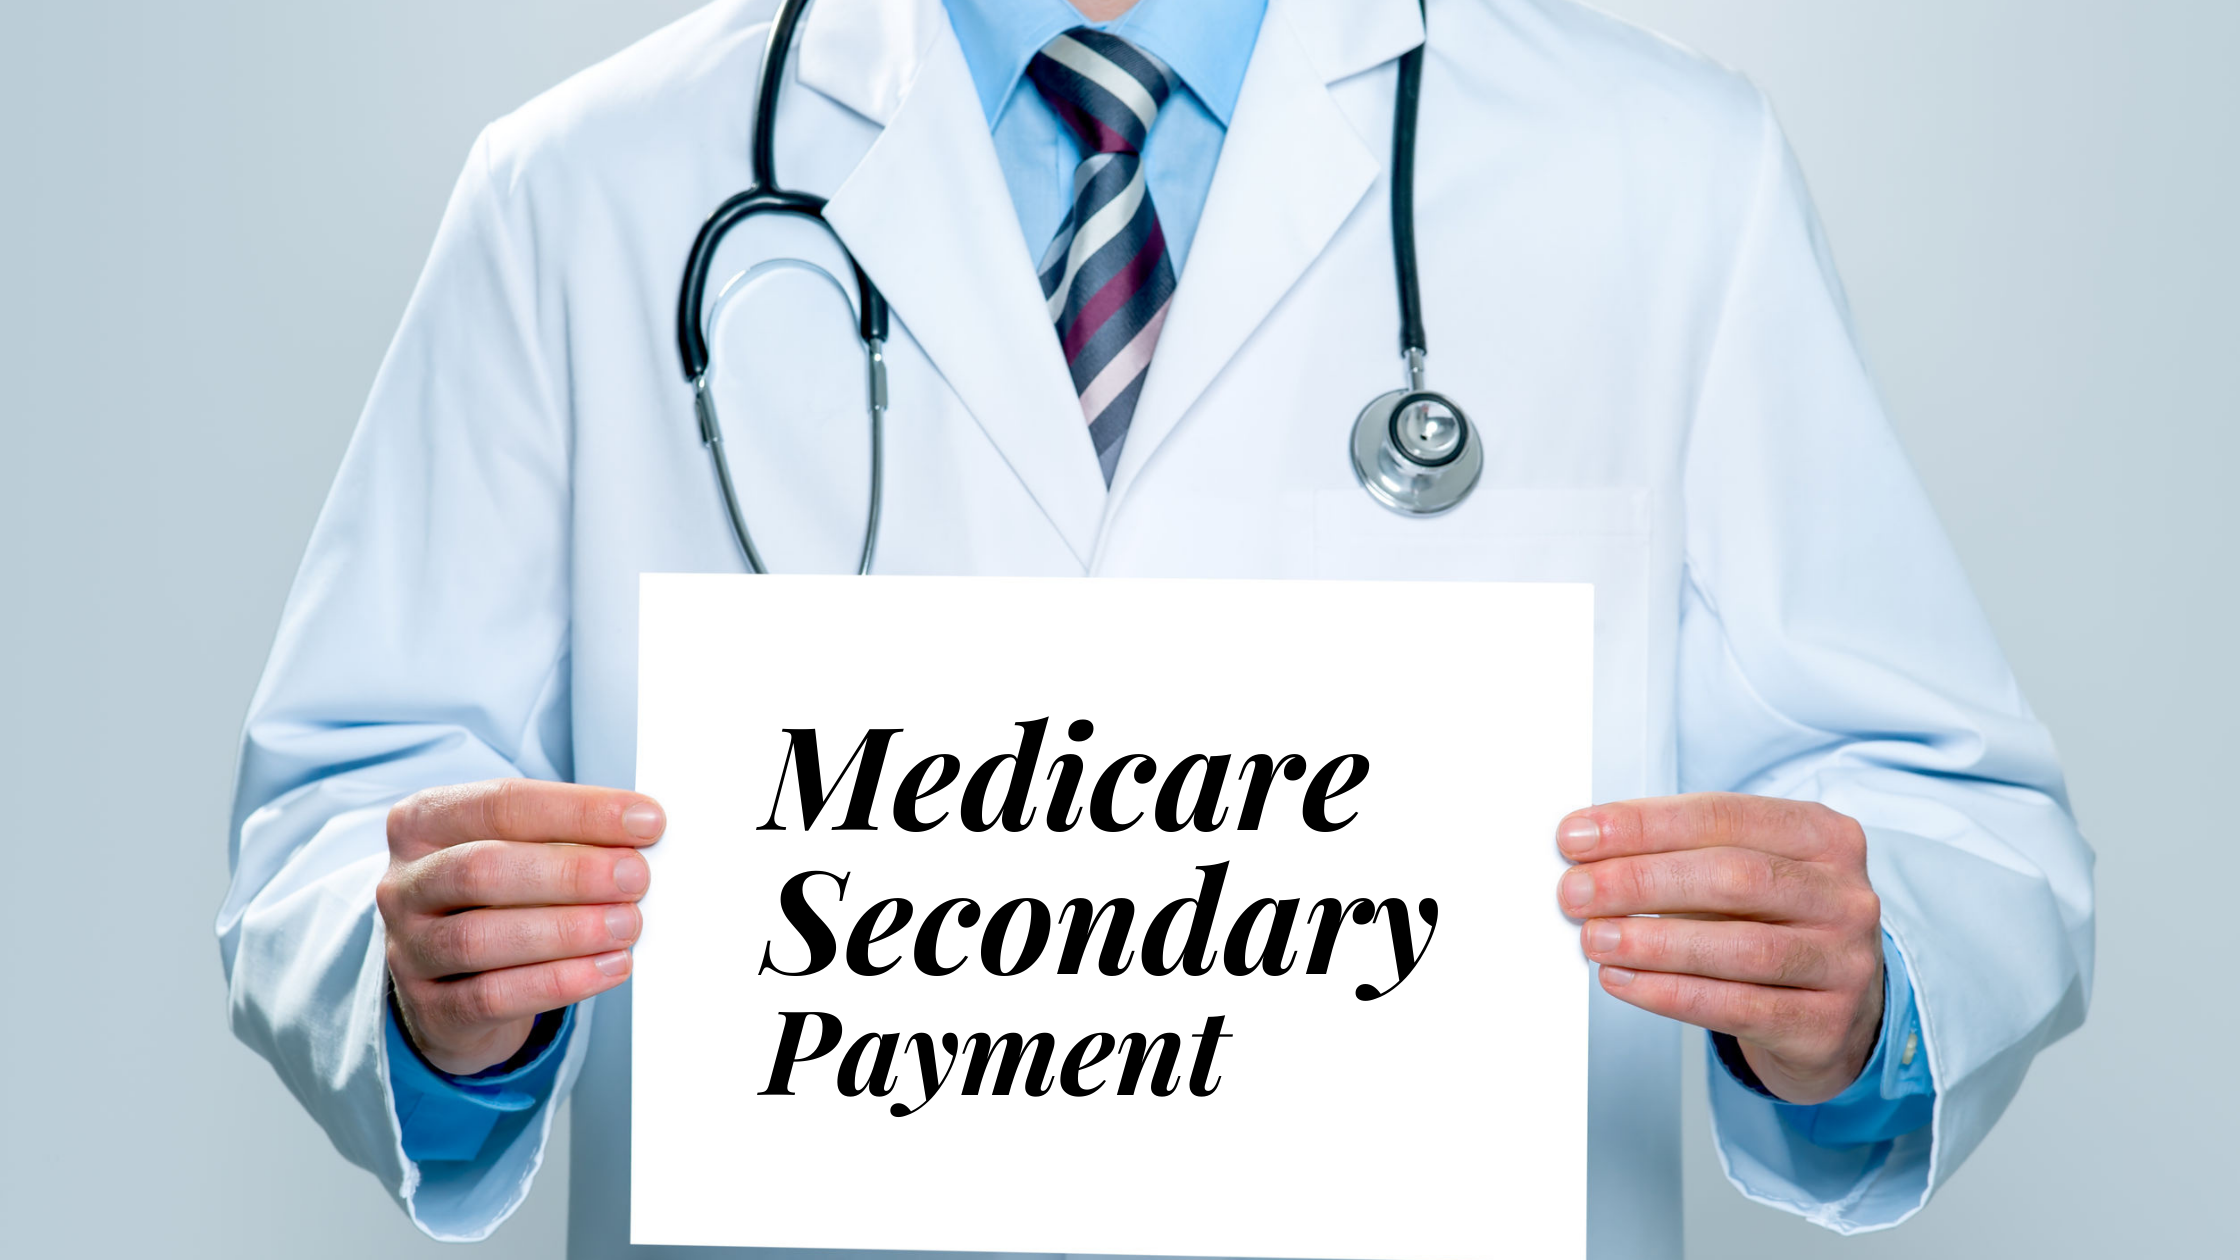 Medicare Secondary Payment